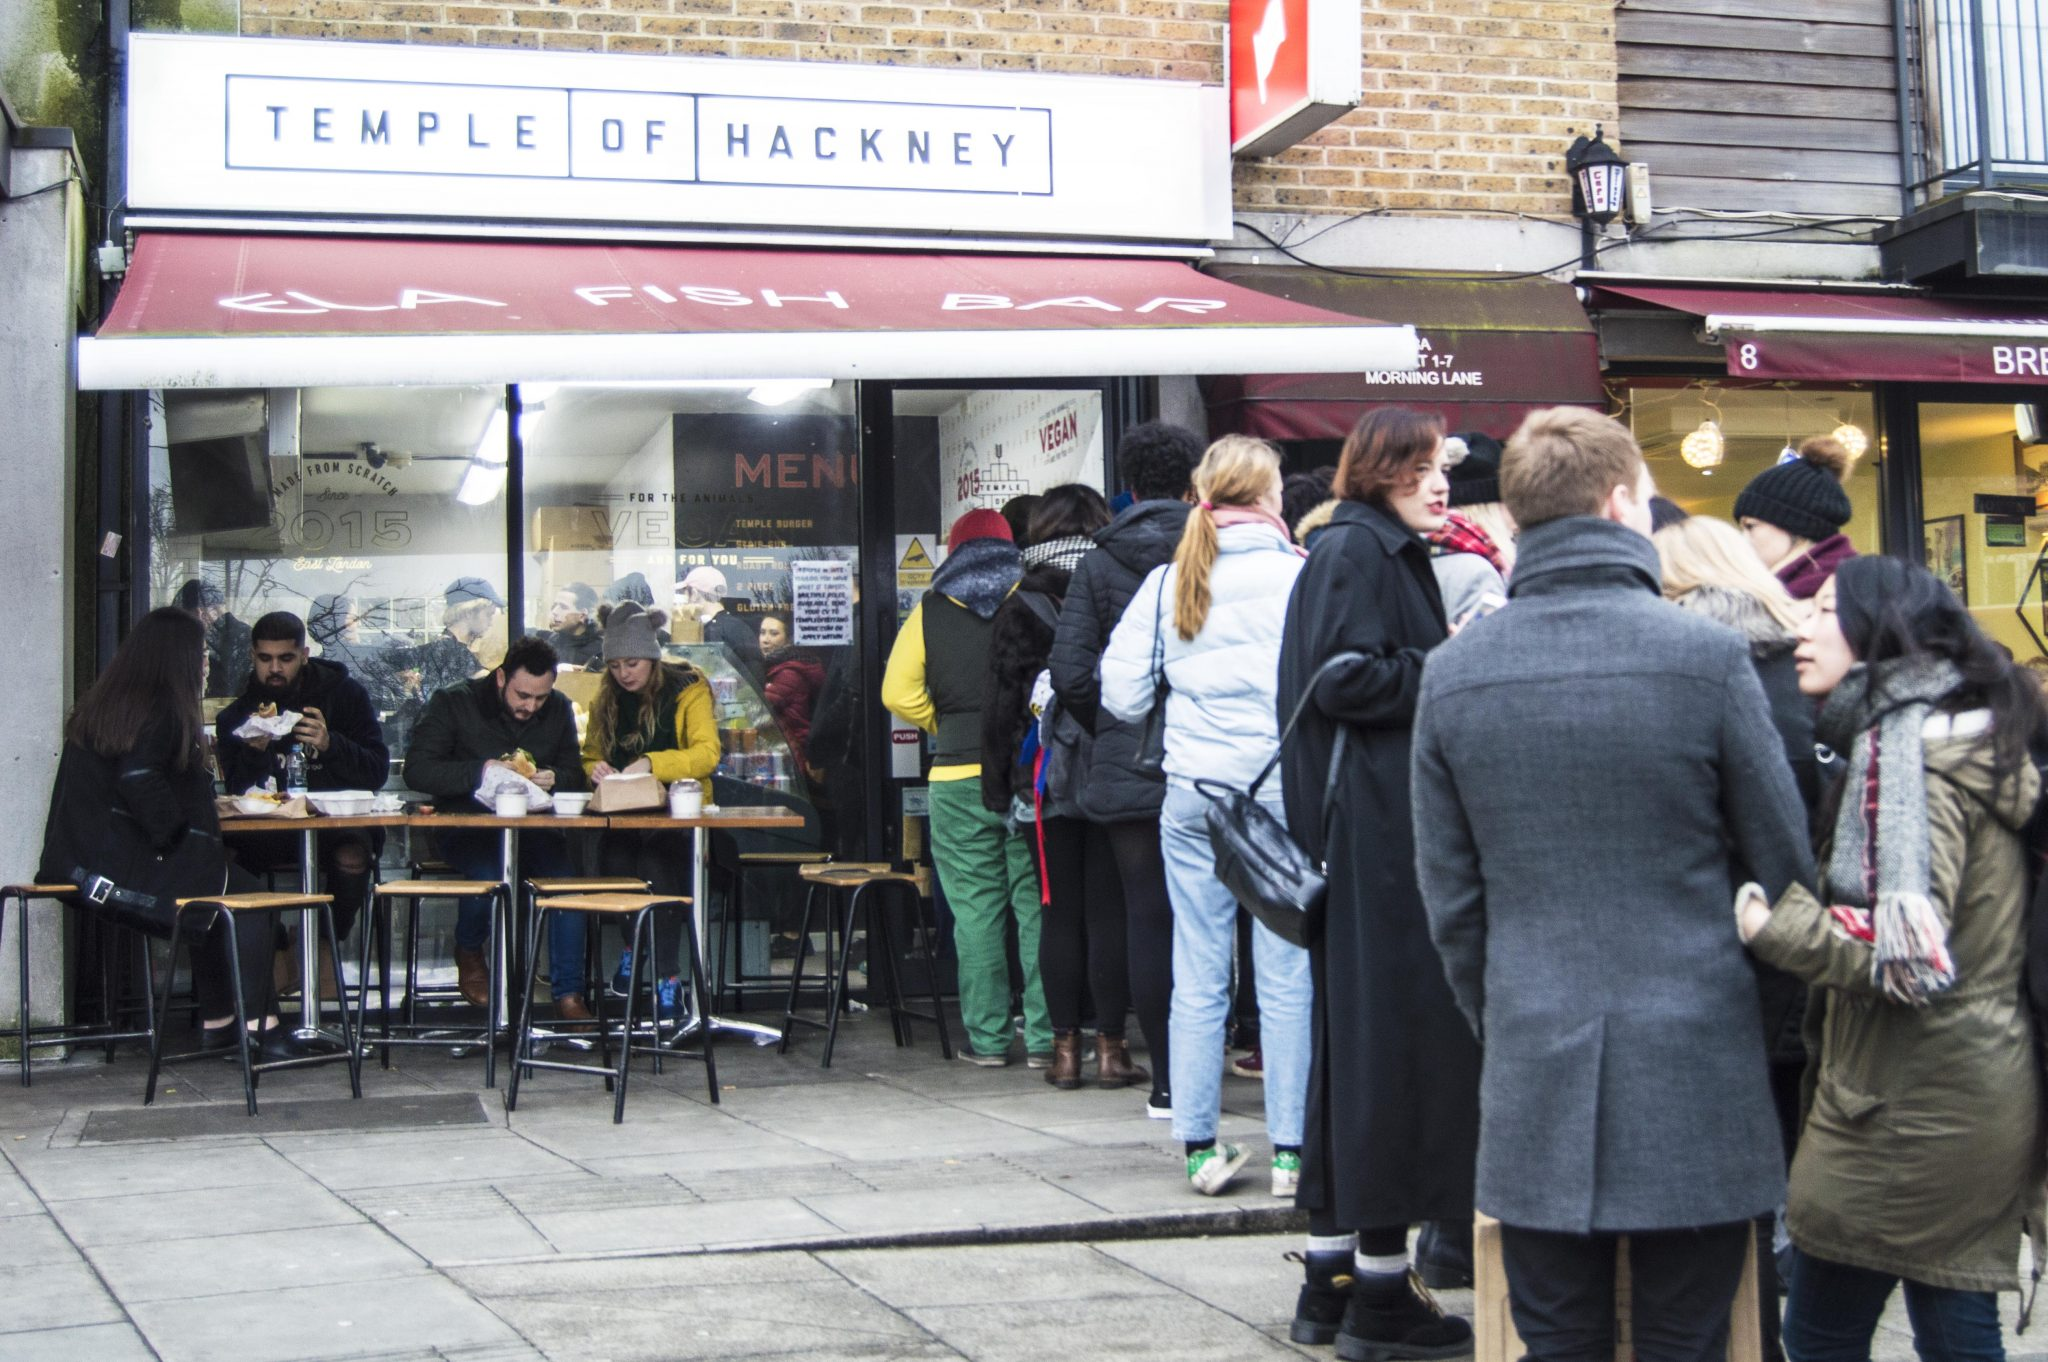 Temple Of Hackney Vegan Chicken London